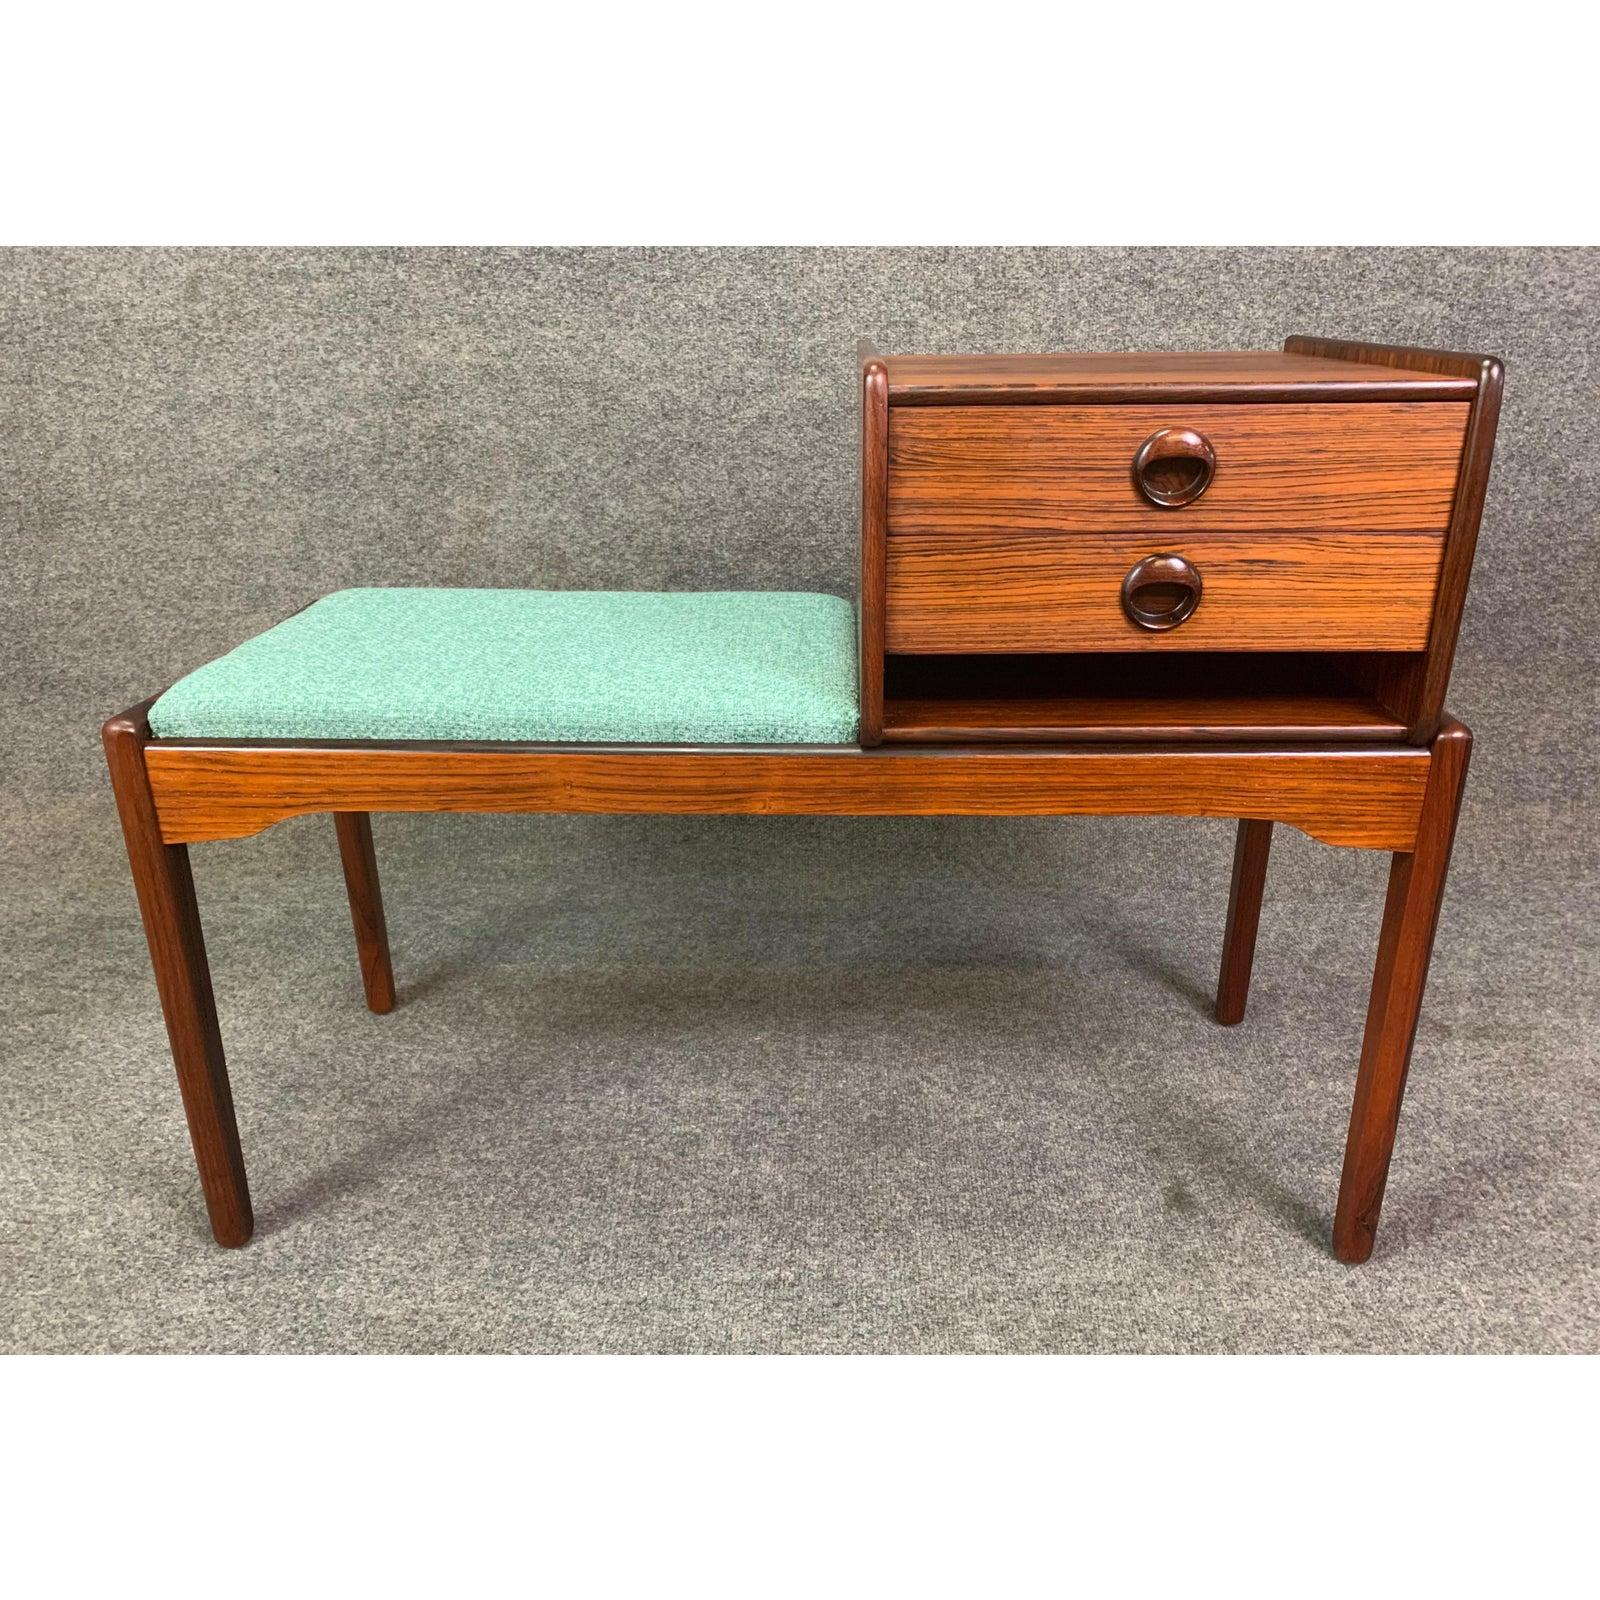 Image of: Vintage Danish Mid Century Modern Rosewood Telephone Bench Entry Way Console For Sale At 1stdibs